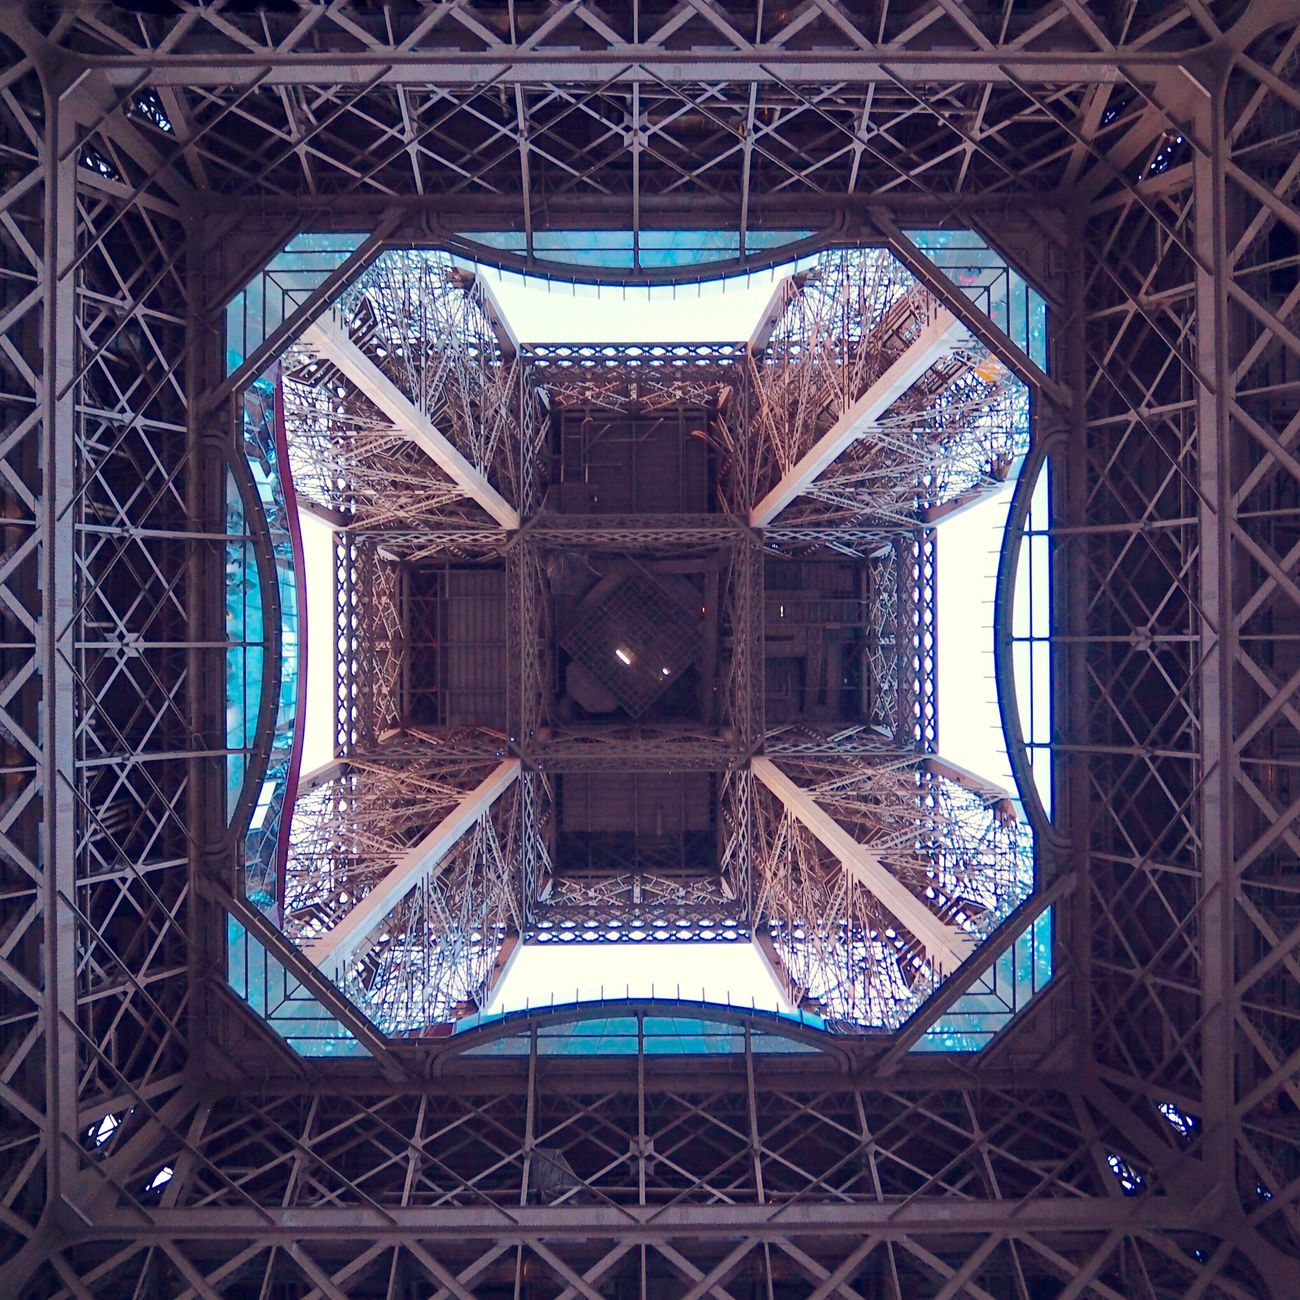 always looking for new perspektives Architecture No People City Street Streetphotography Urban Low Angle View Geometric Shape Geometry Lines Symmetry Abstract Abstract Photography Paris Tour Eiffel Eifelturm France Frankreich Steel Construction Backgrounds EyeEmNewHere The Architect - 2017 EyeEm Awards